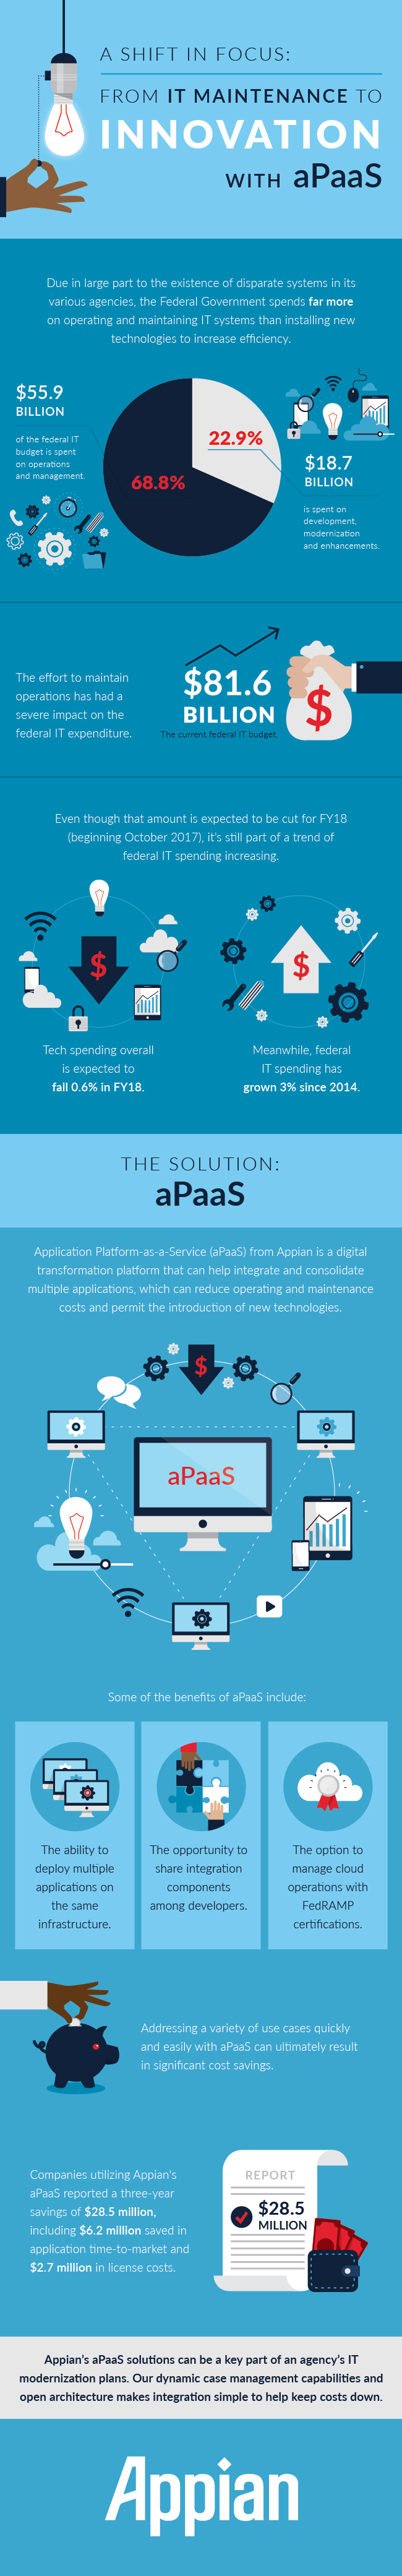 A Shift in Focus from IT Maintenance to Innovation with aPaaS